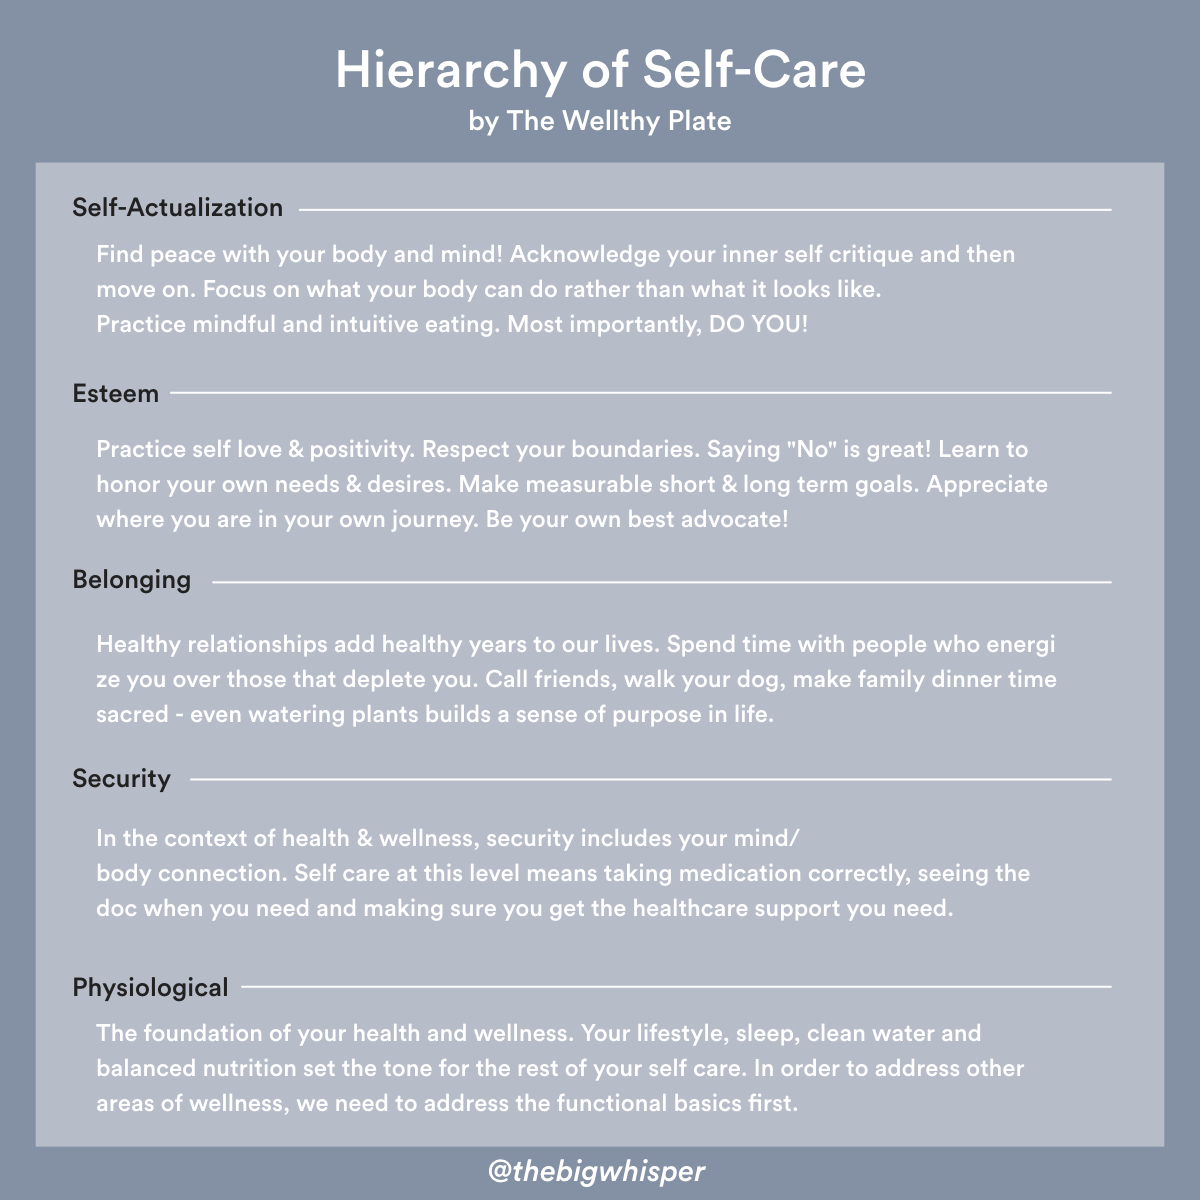 hierarchy-self-care-updated-2.001.jpeg